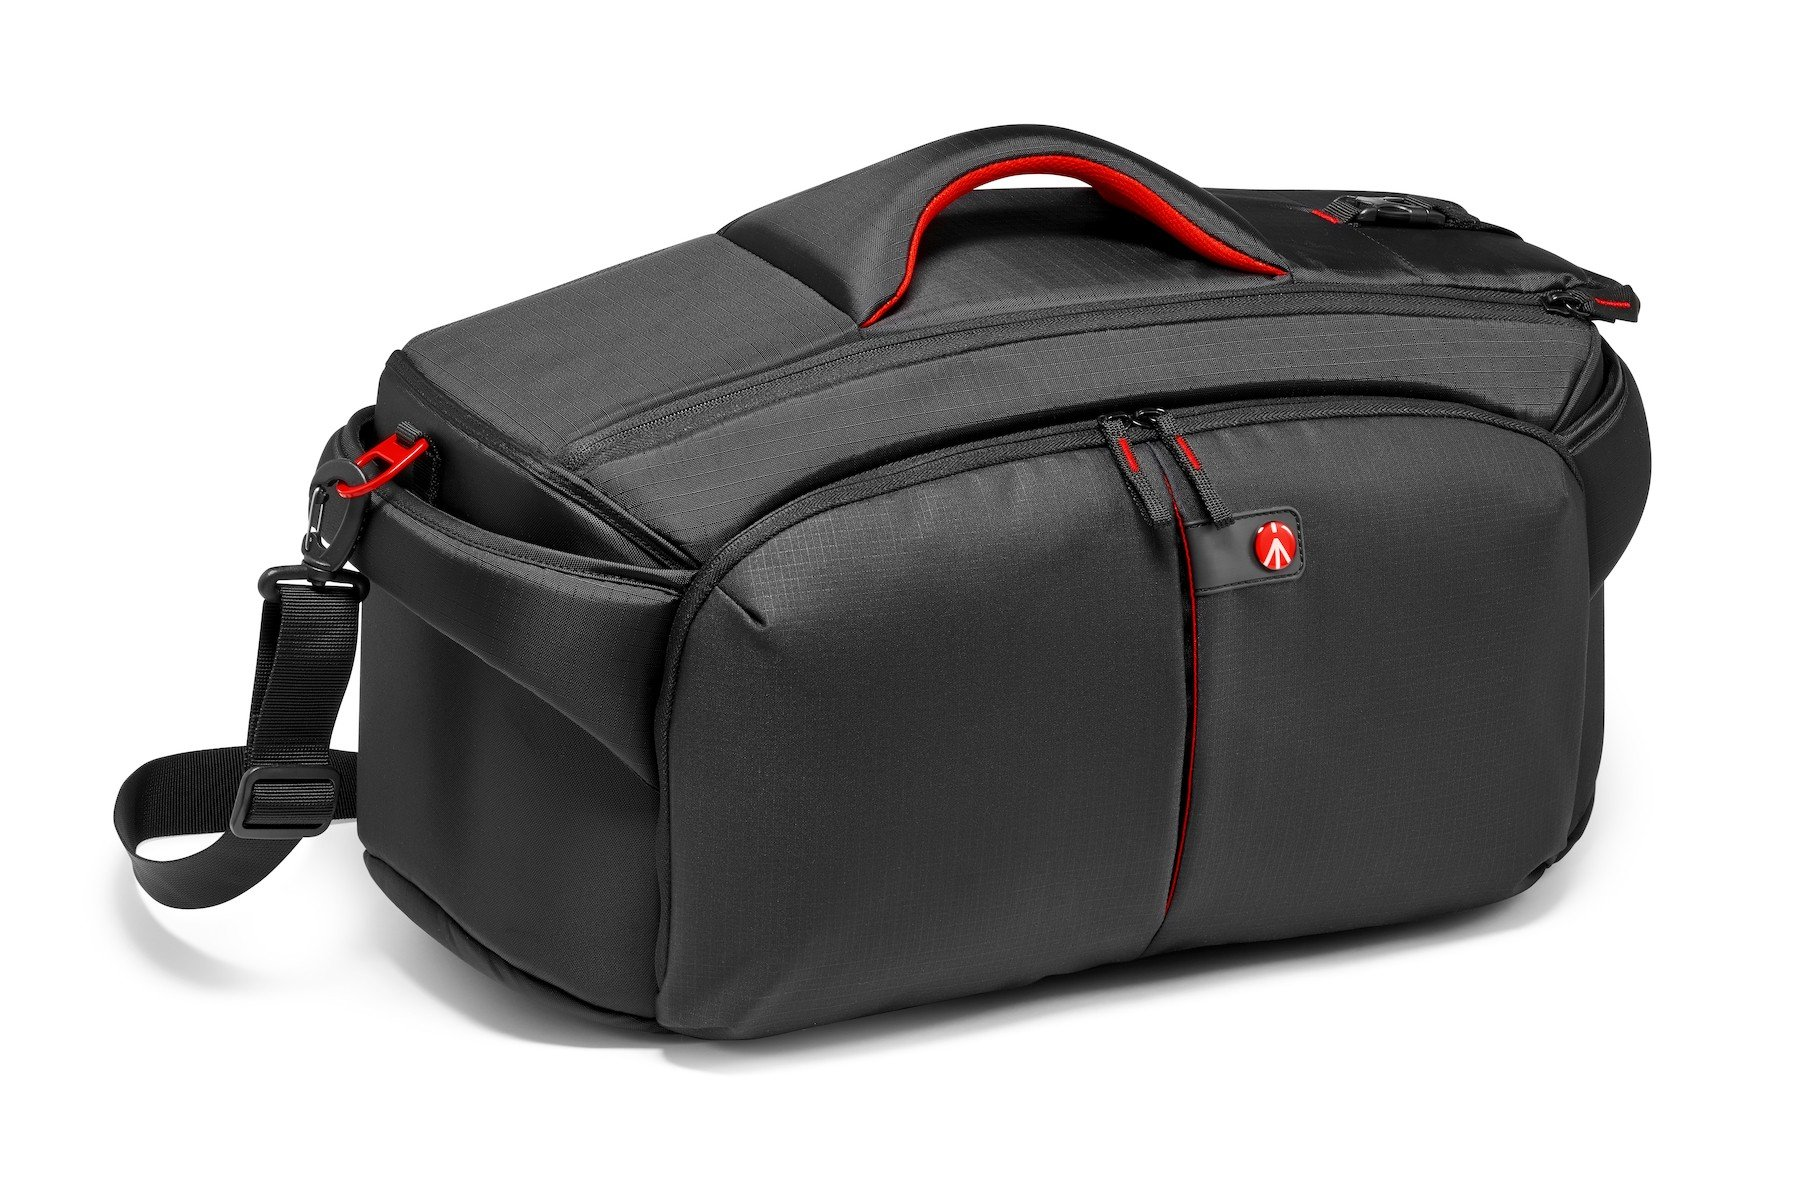 Manfrotto Pro Light Video Camera Bag, Black, Compact (MB PL-CC-193N) by Manfrotto